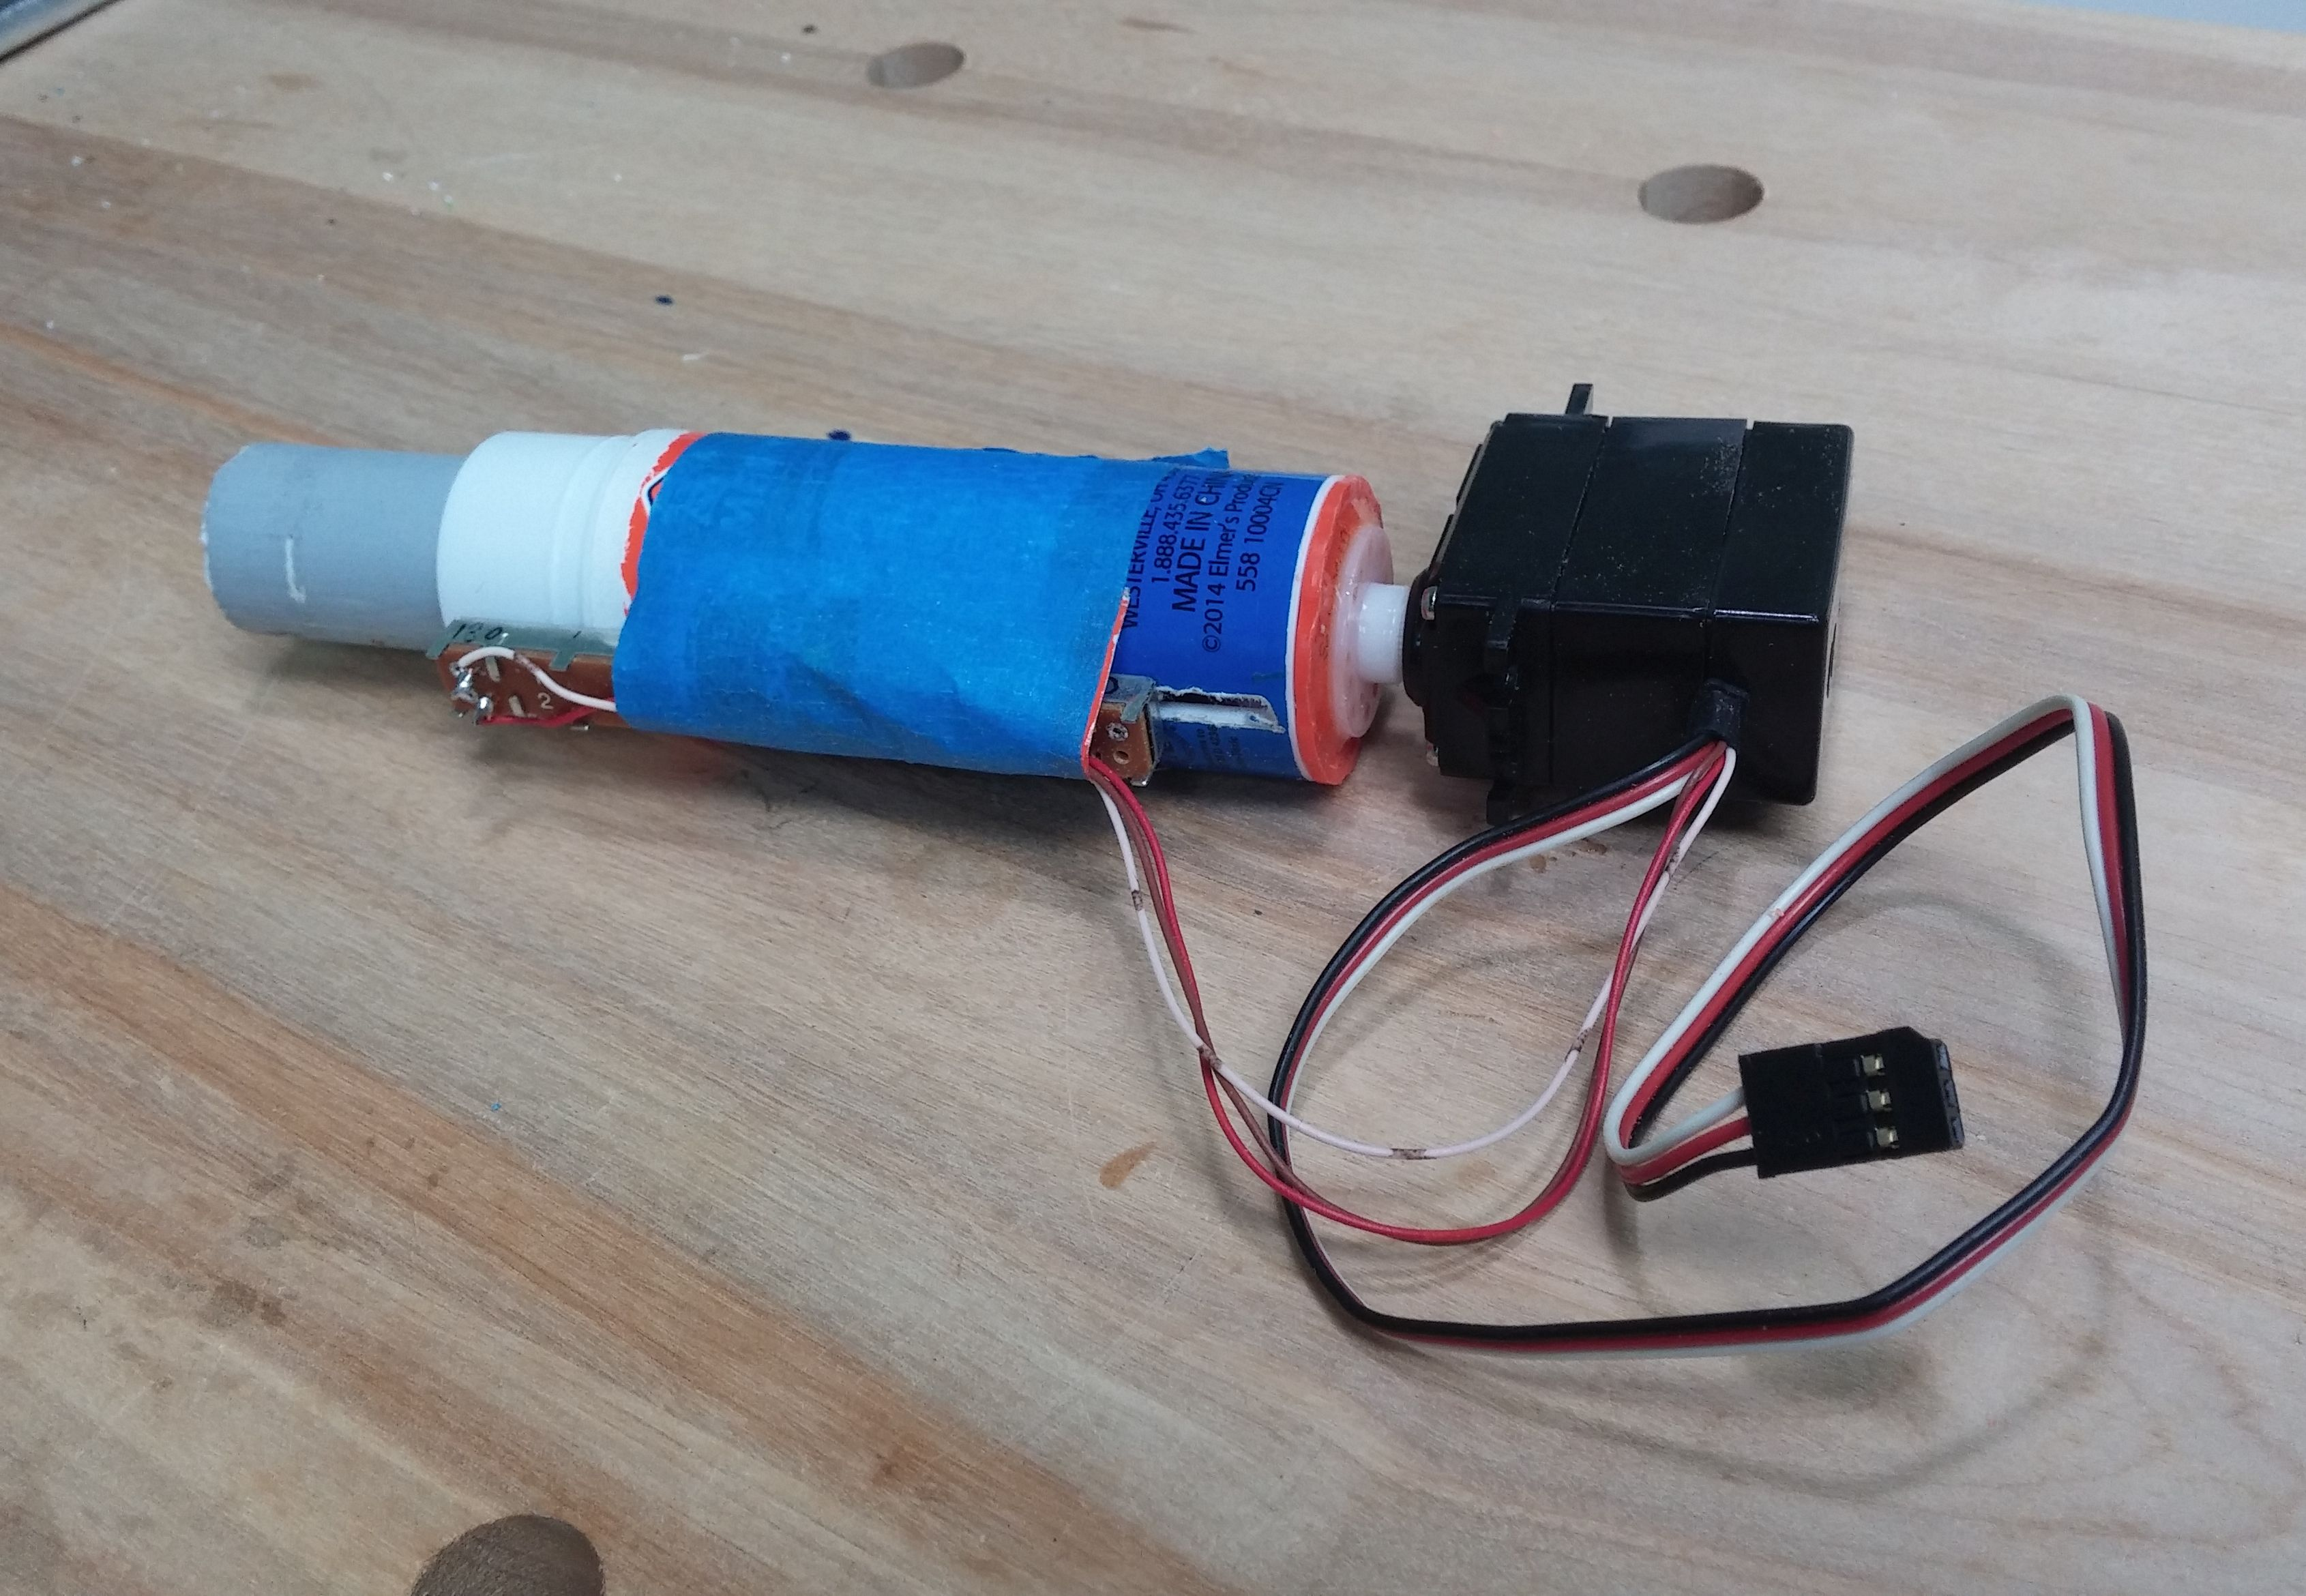 Build This Inexpensive Linear Actuator From A Glue Stick